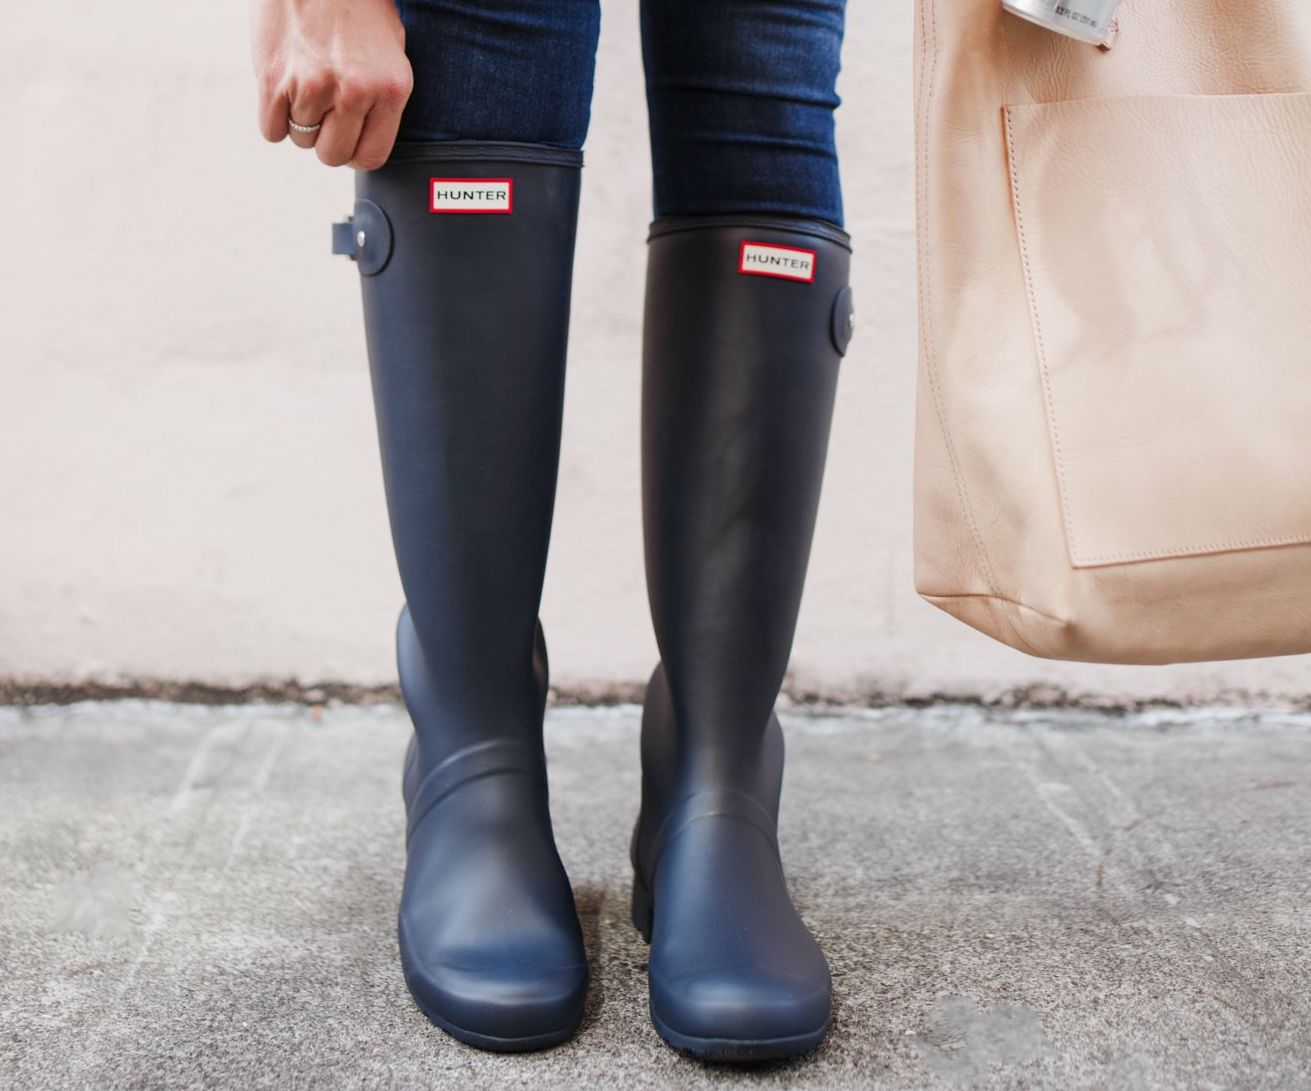 10bb3f129e9 Classic Hunter Boots, as Low as $86.99! - The Krazy Coupon Lady